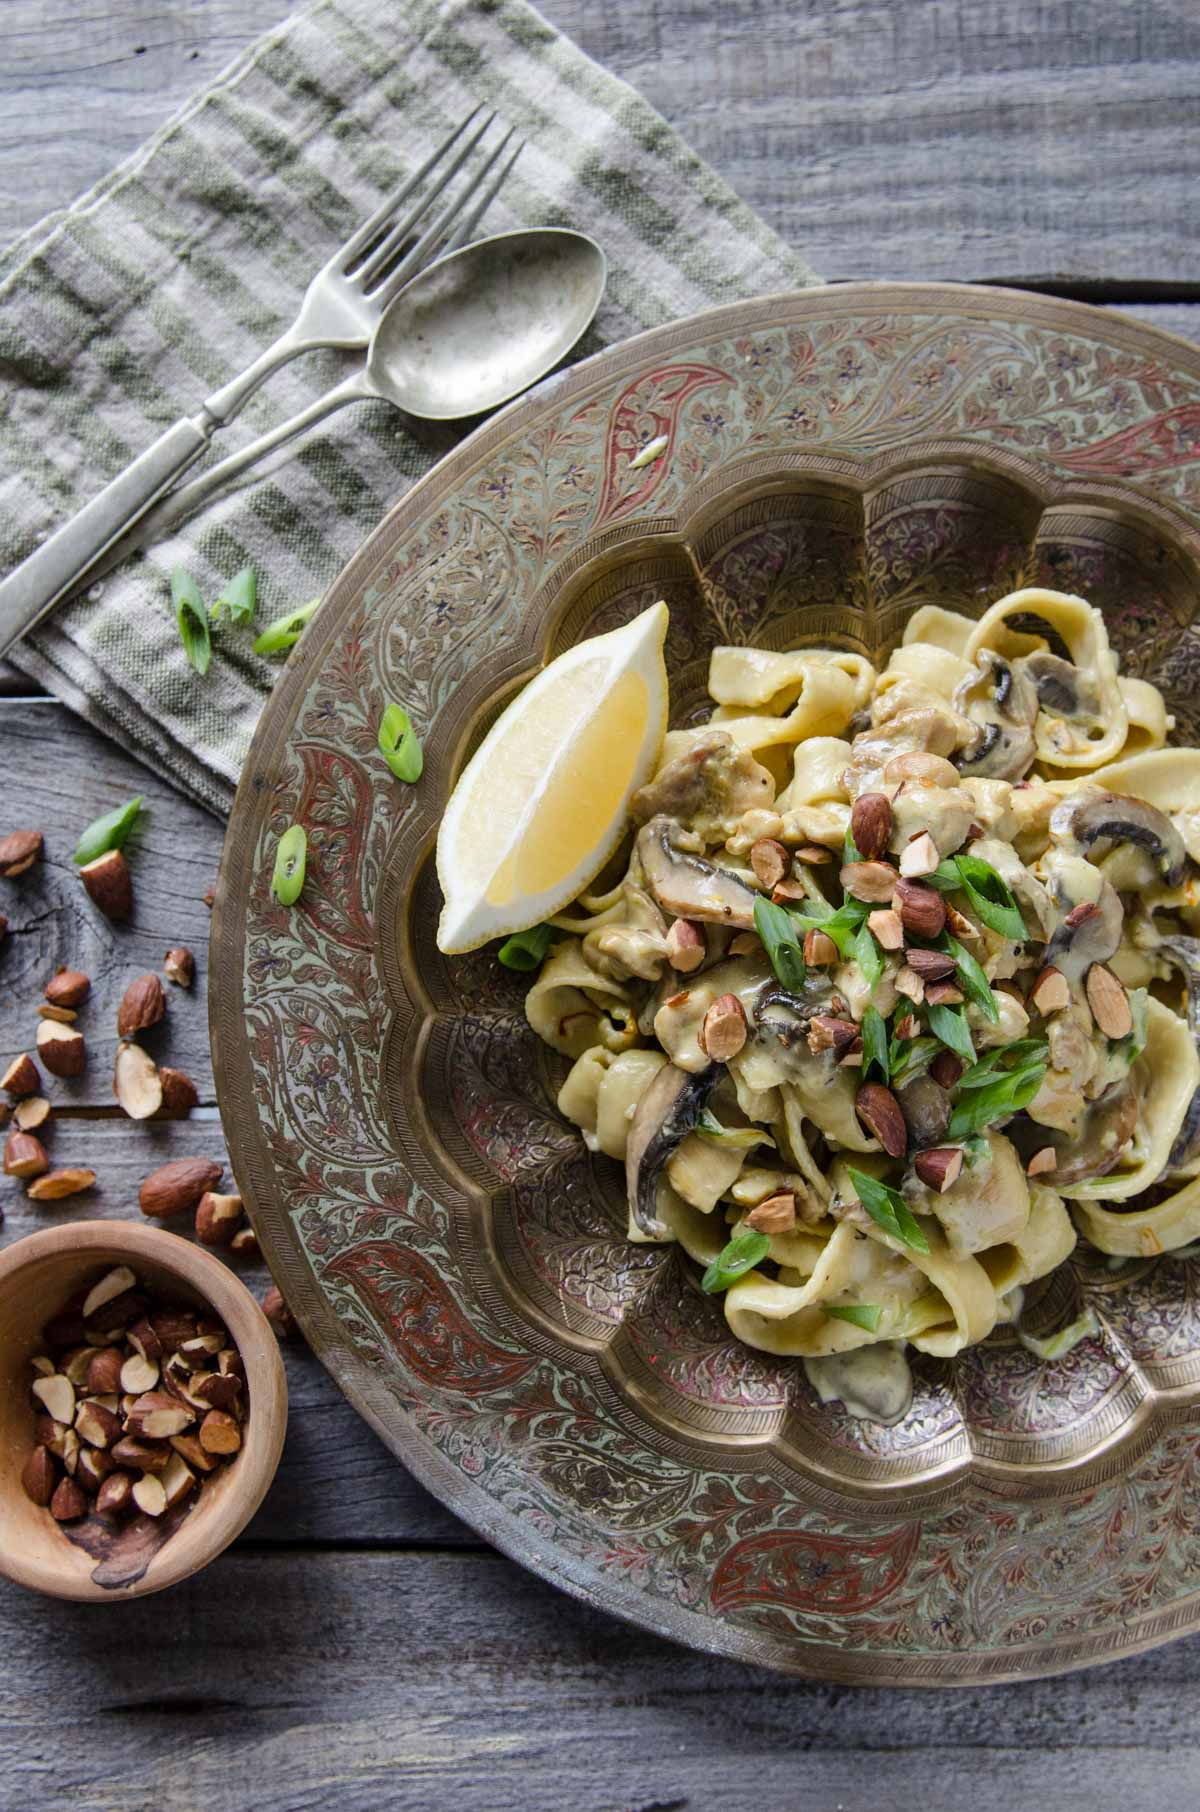 Saffron Chicken and Mushroom Cream Fettuccine | Chew Town Food Blog